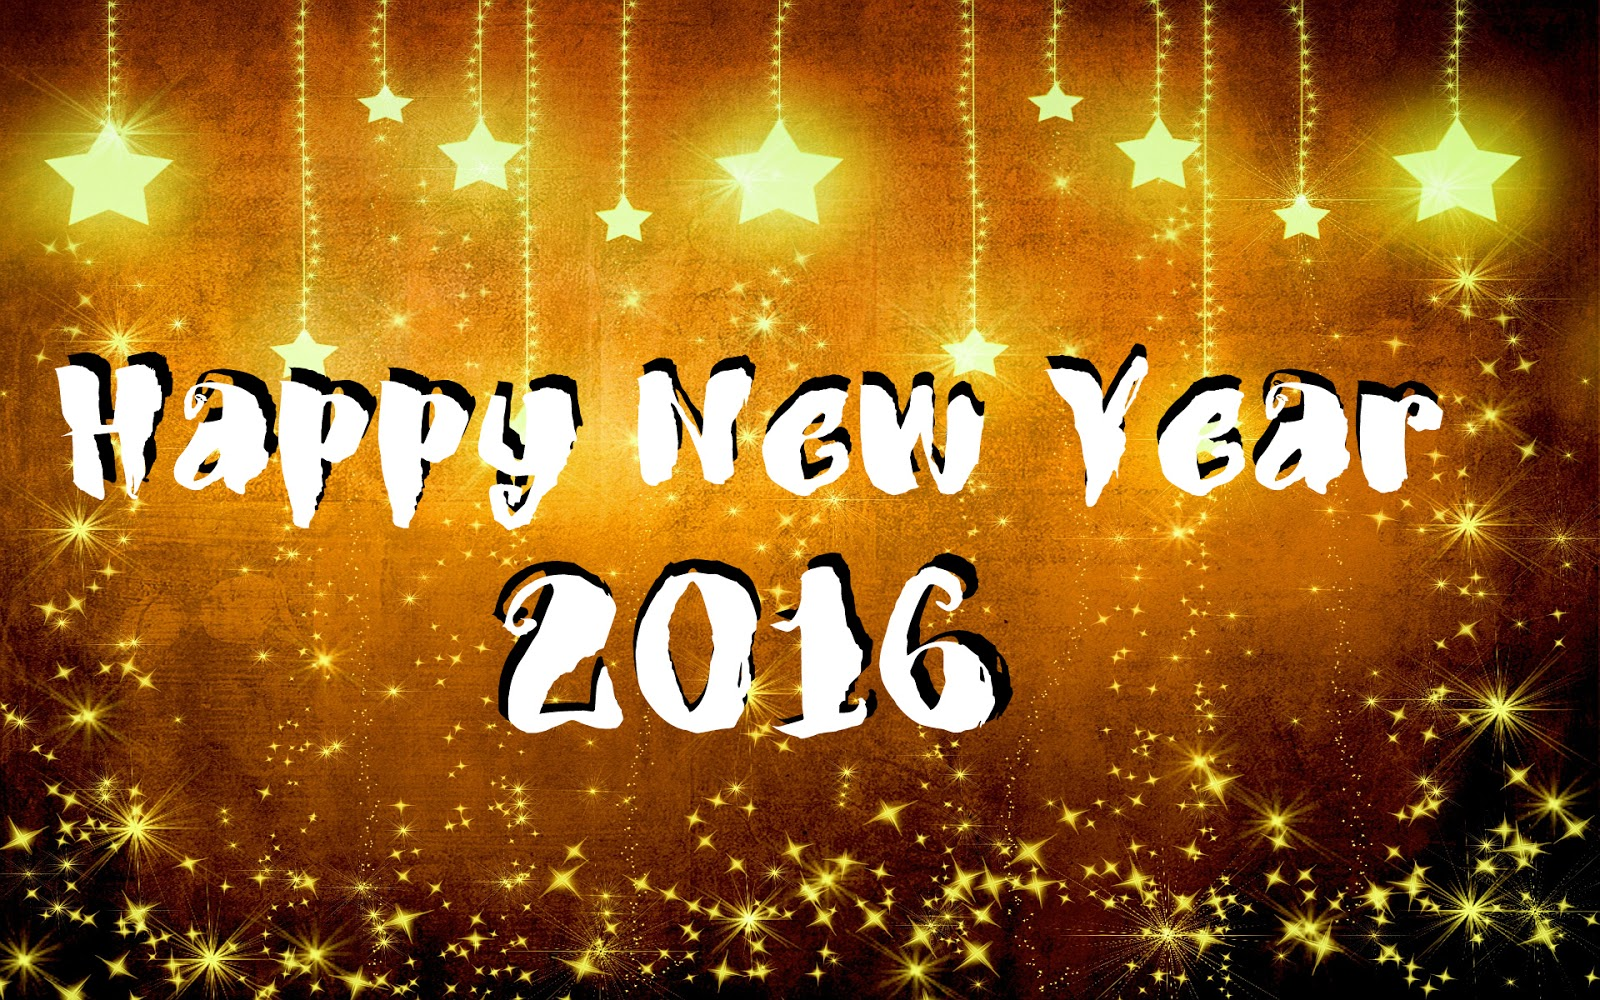 Happy New Year 2016 Wallpaper Images Download